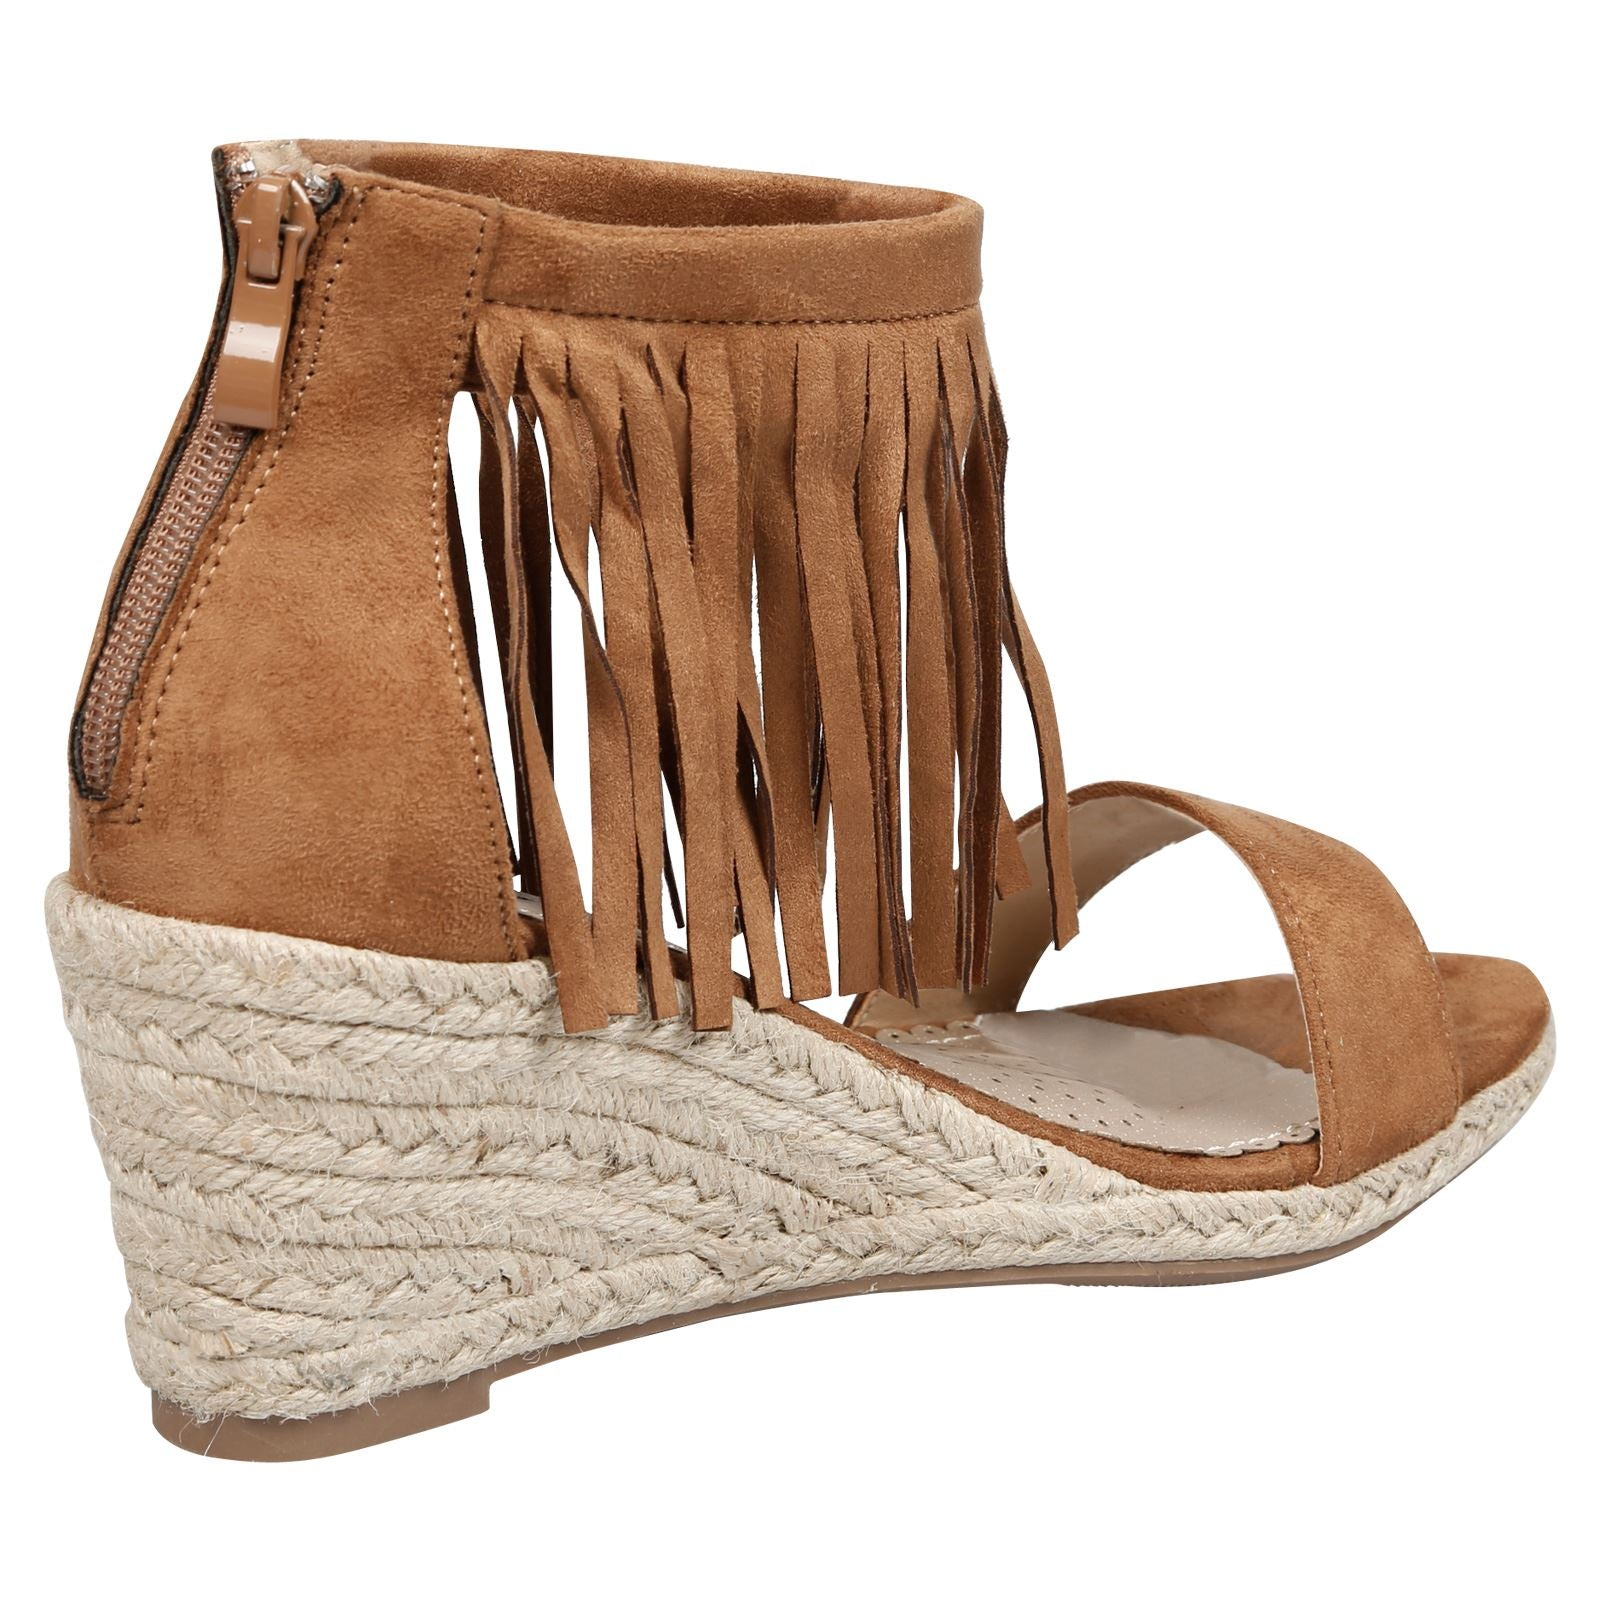 Nadja Fringed Wedge Espadrille Sandals in Camel Faux Suede